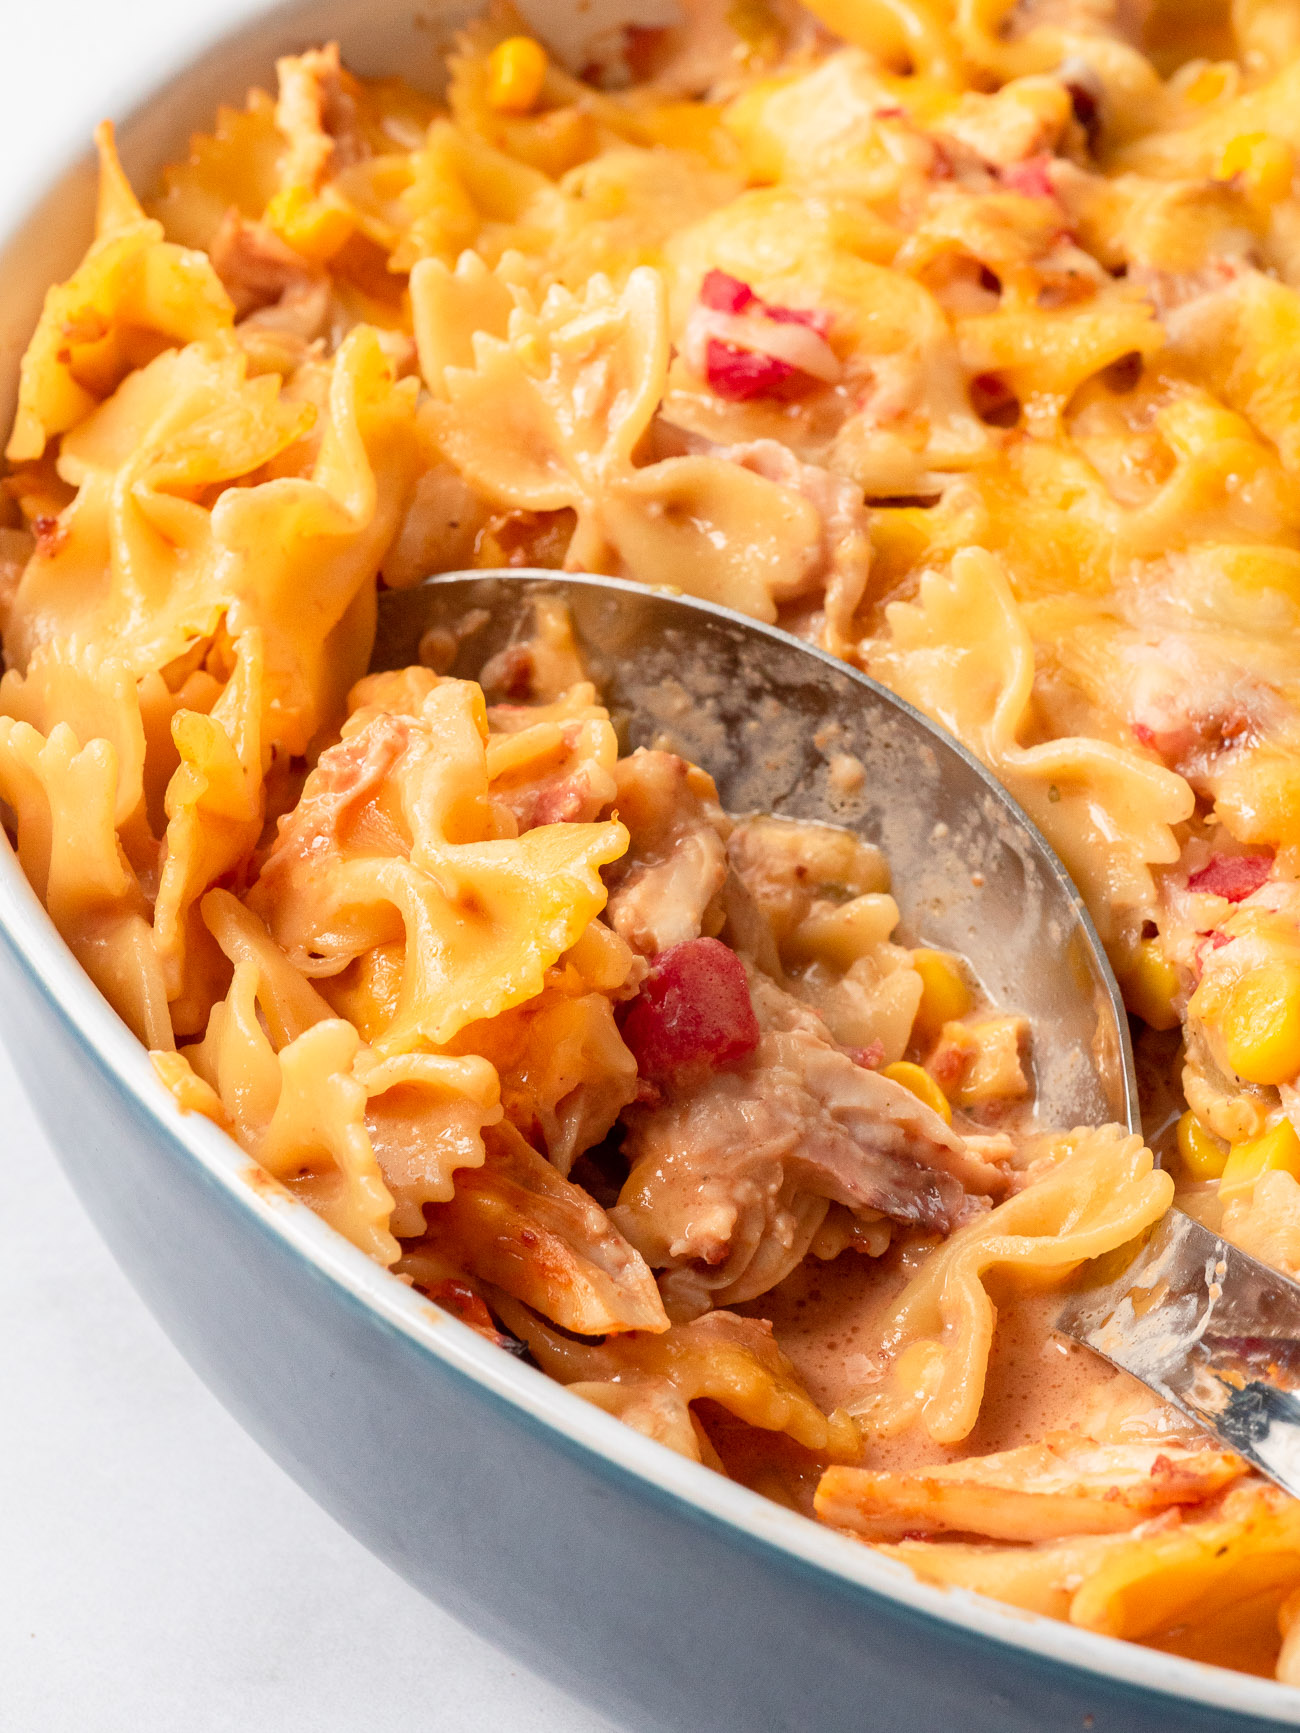 BBQ Ranch Chicken casserole in a dish with a spoon